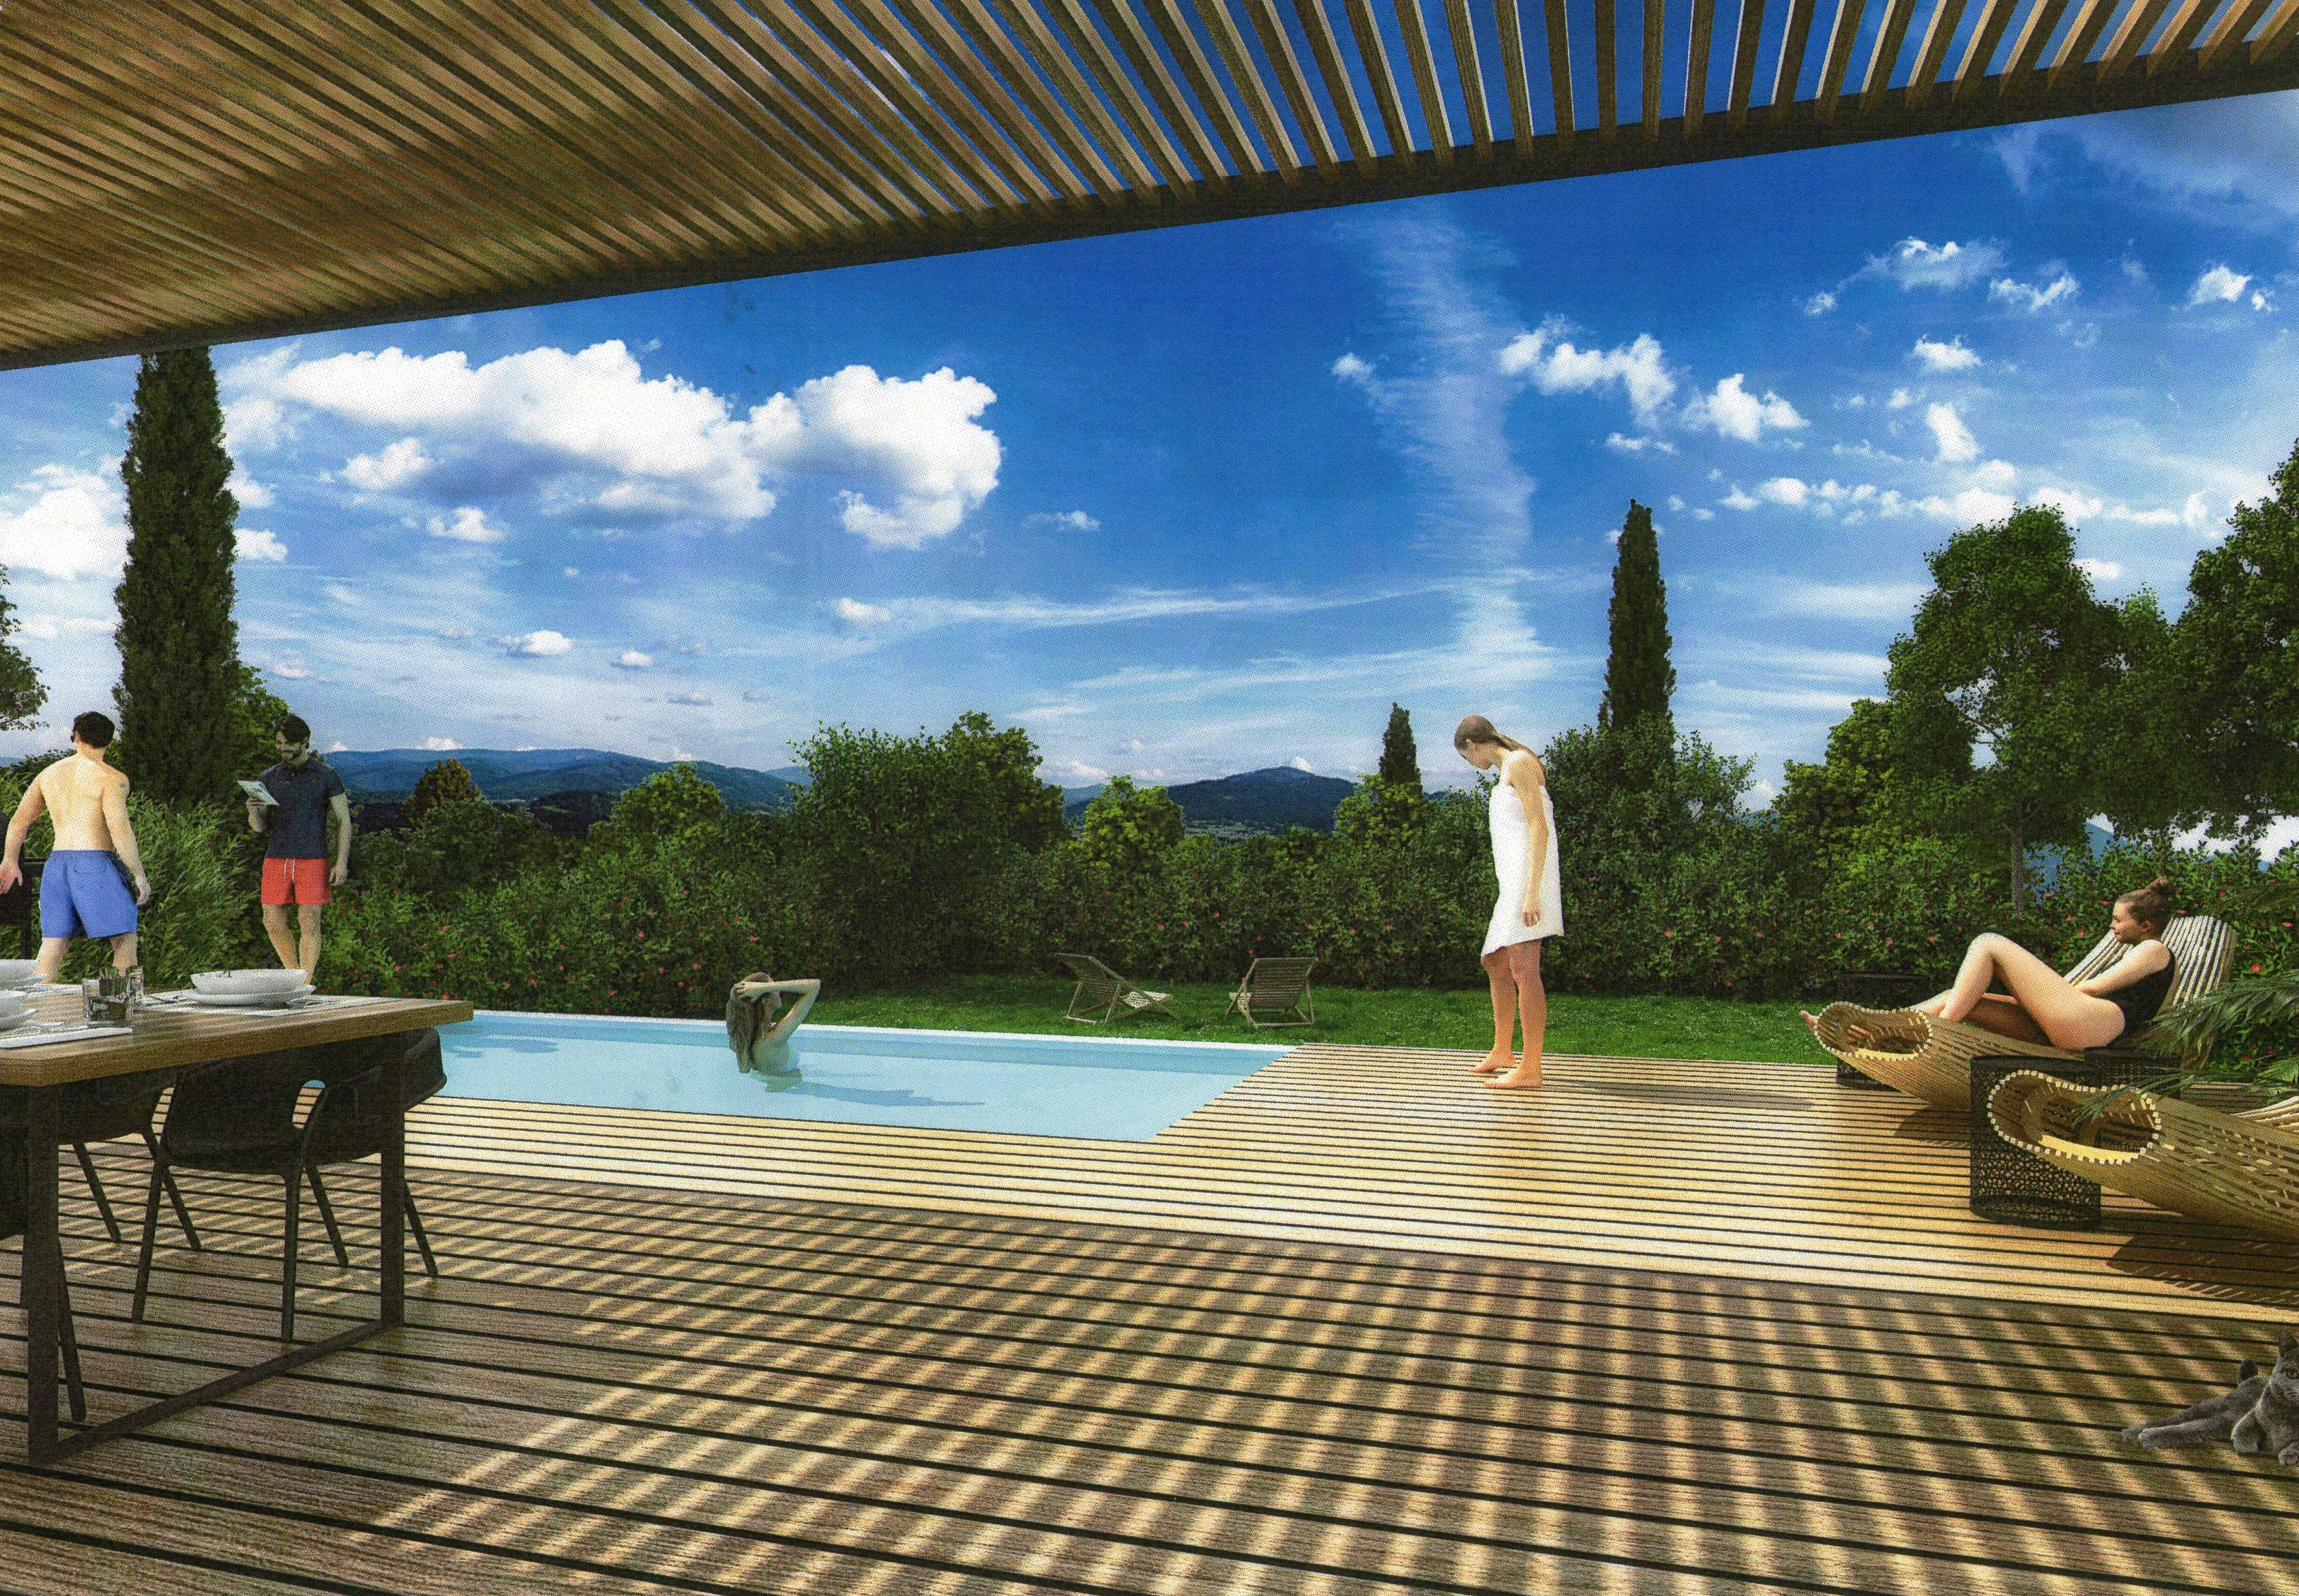 Immobilier les angles 30 annonces immobili res les angles for Piscine 3x6 prix